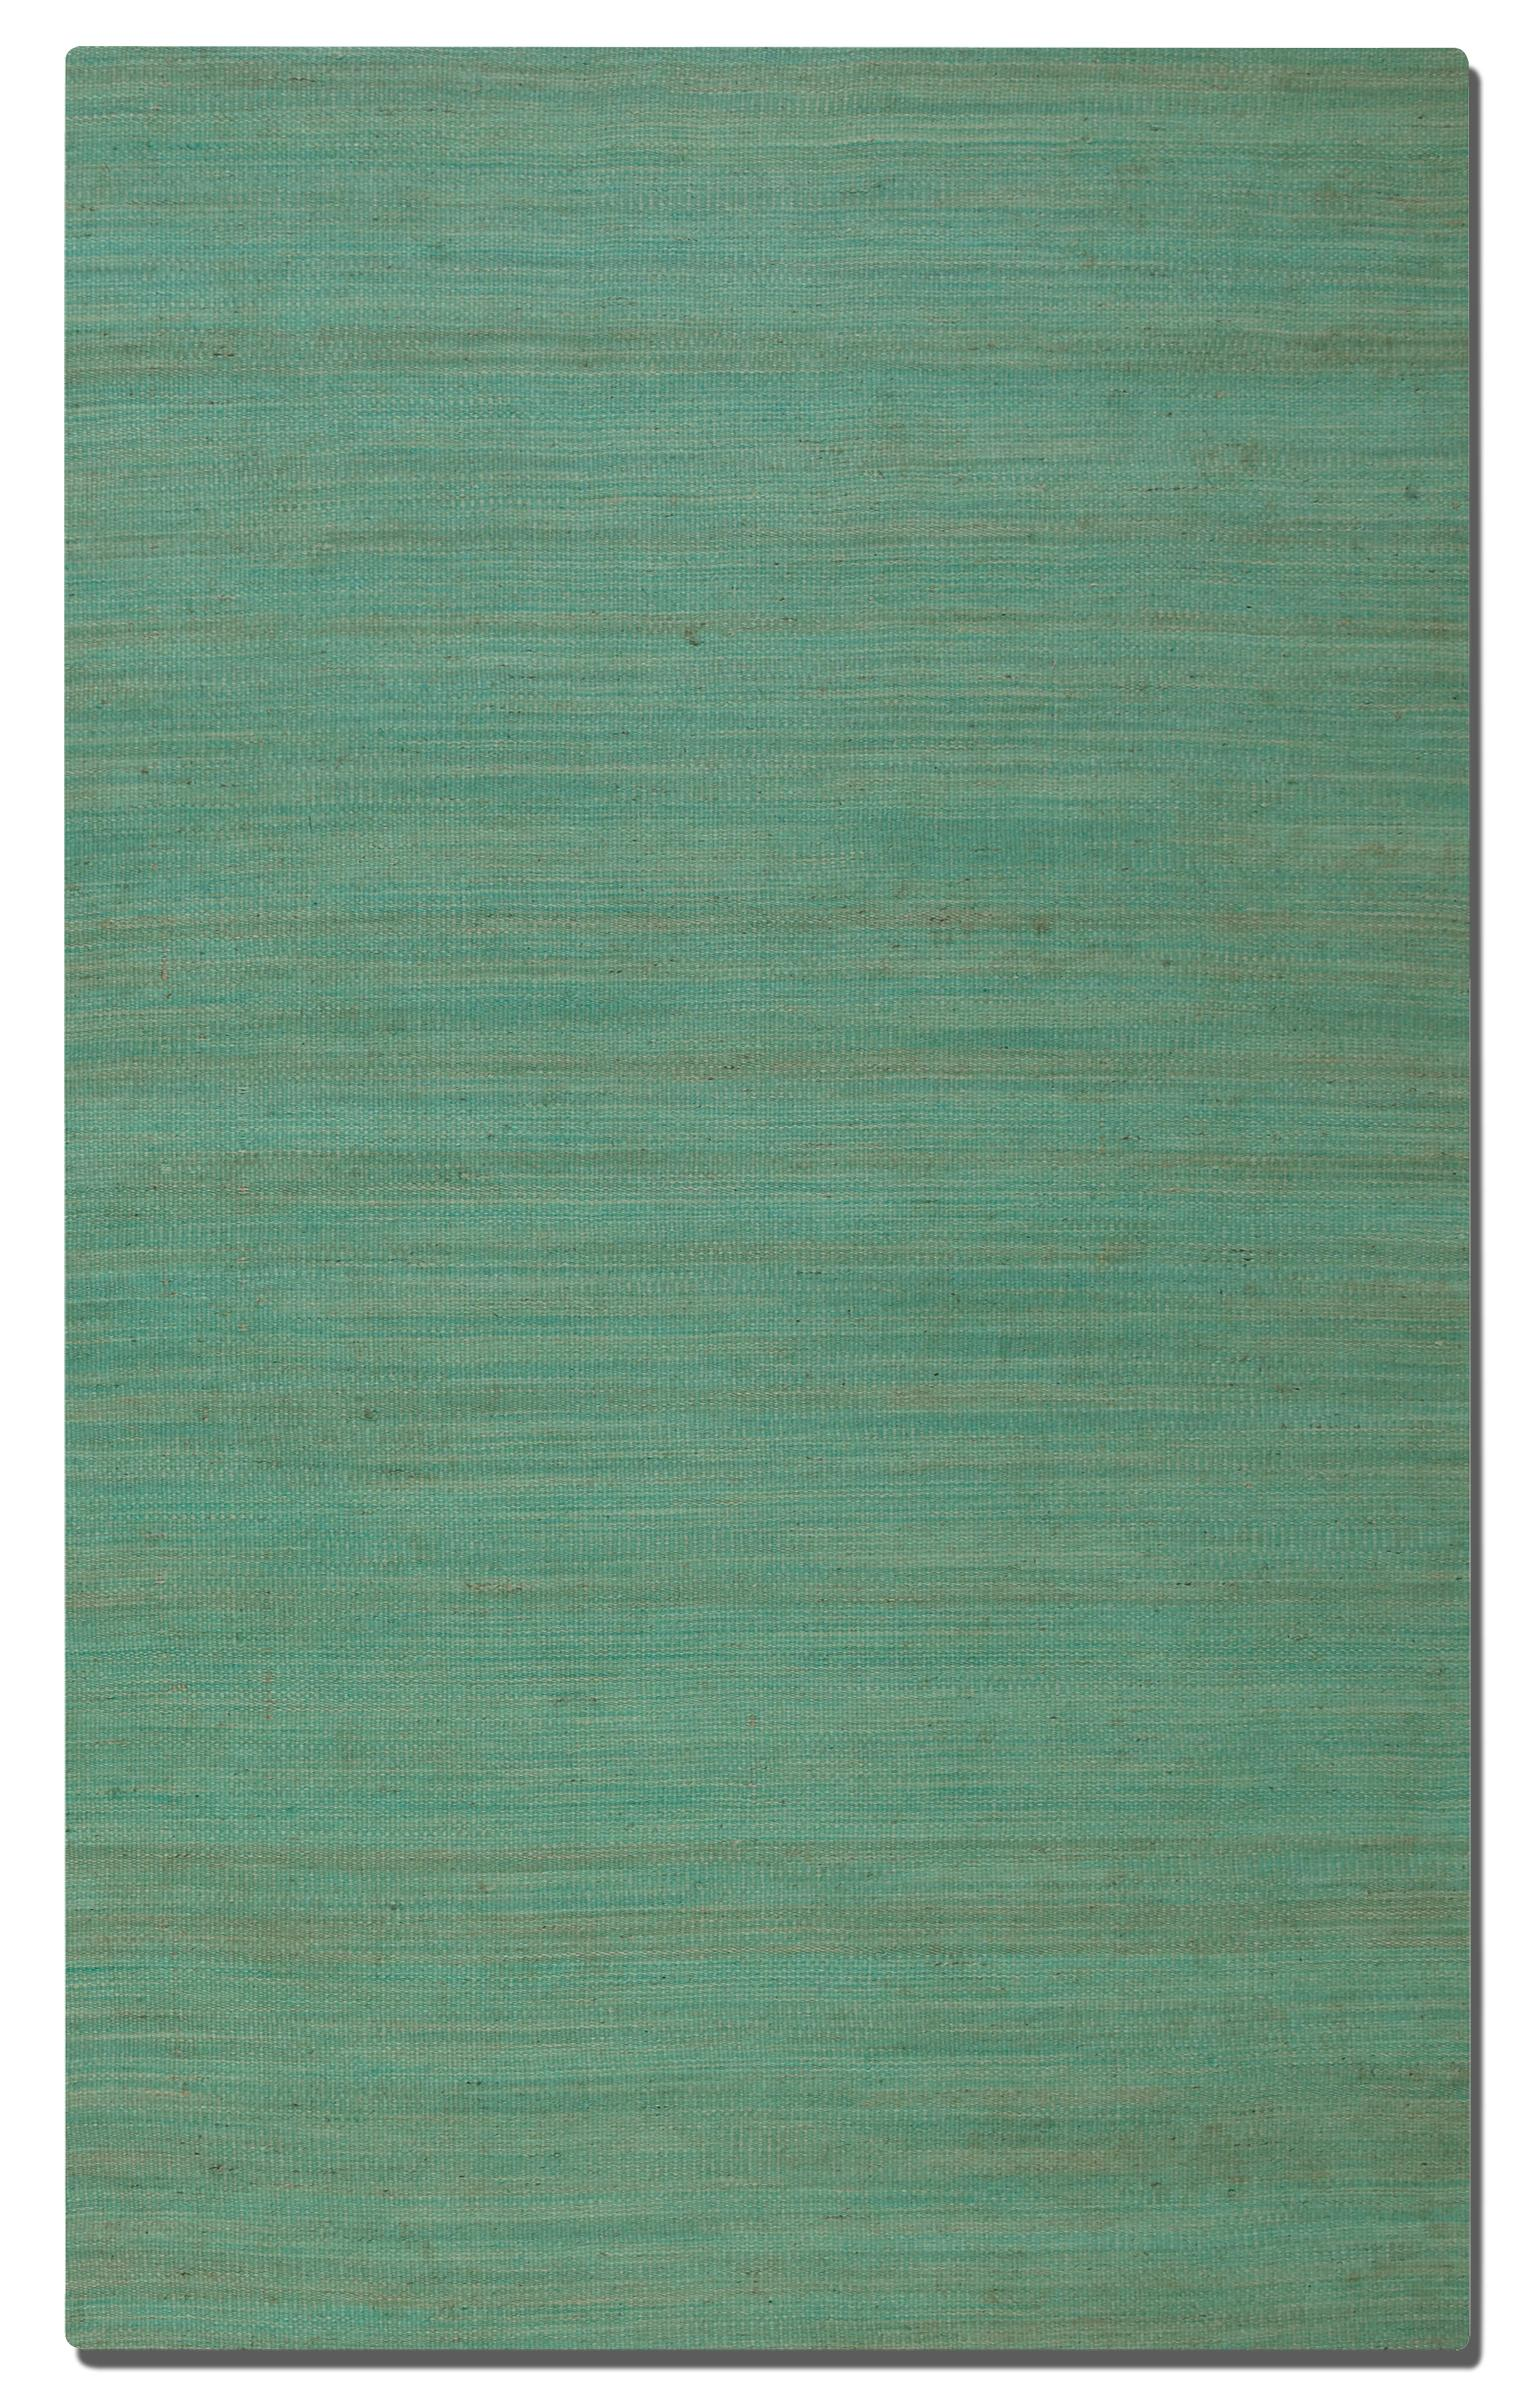 Uttermost Rugs Aruba 5 X 8  - Item Number: 71008-5